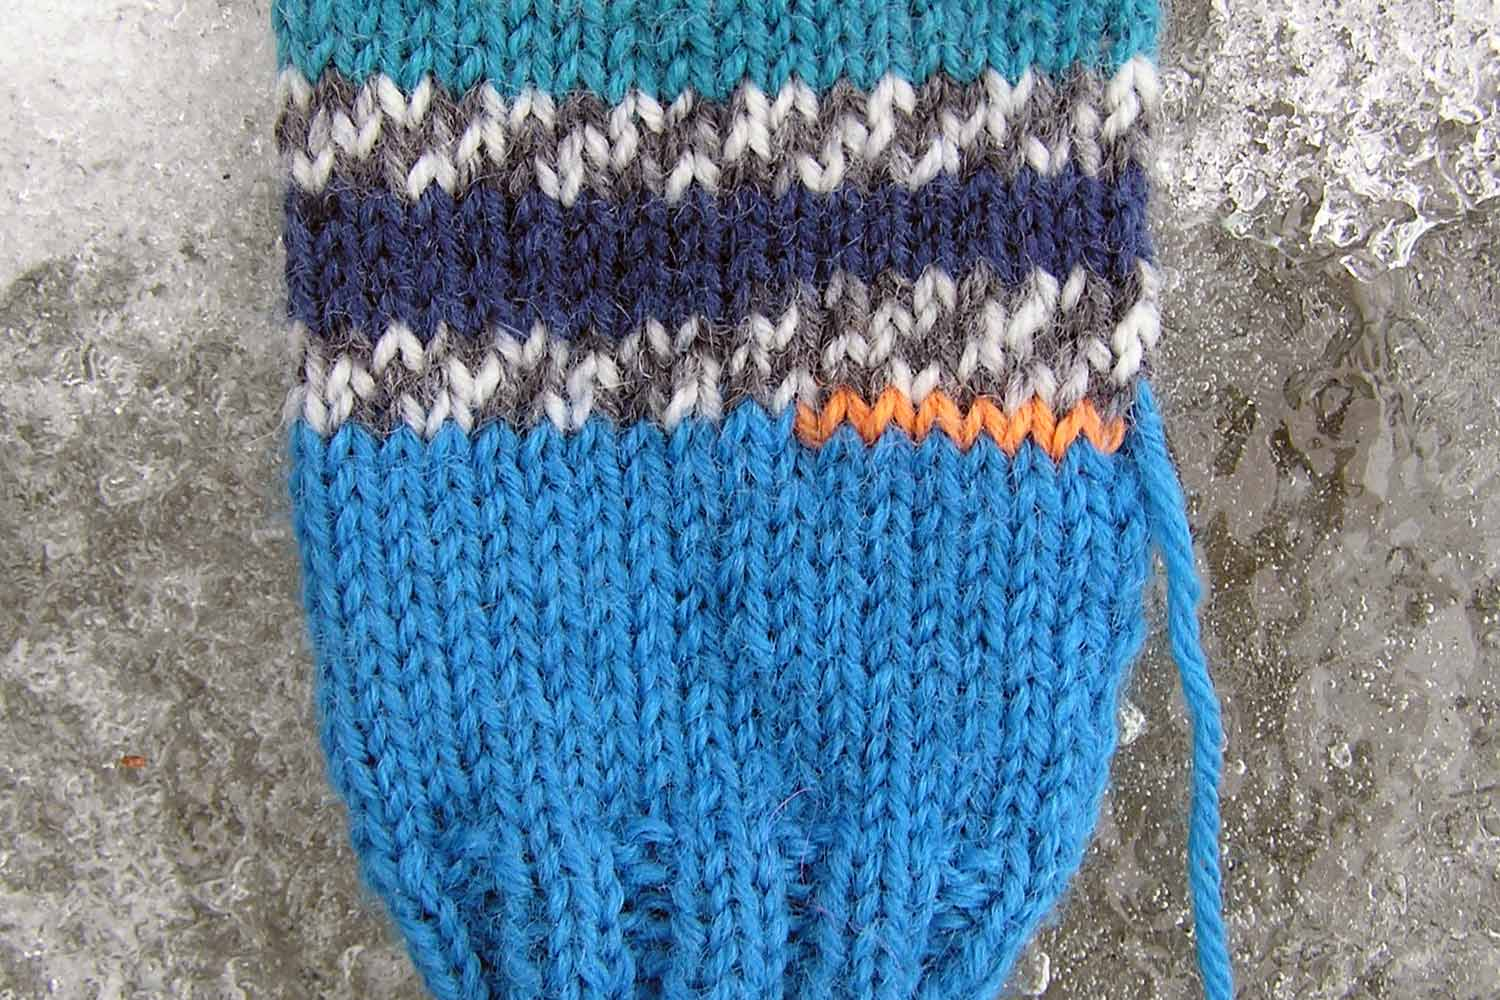 Closeup of the palm section of a mitten with seven orange waste yarn stitches reserving a spot for the thumb.